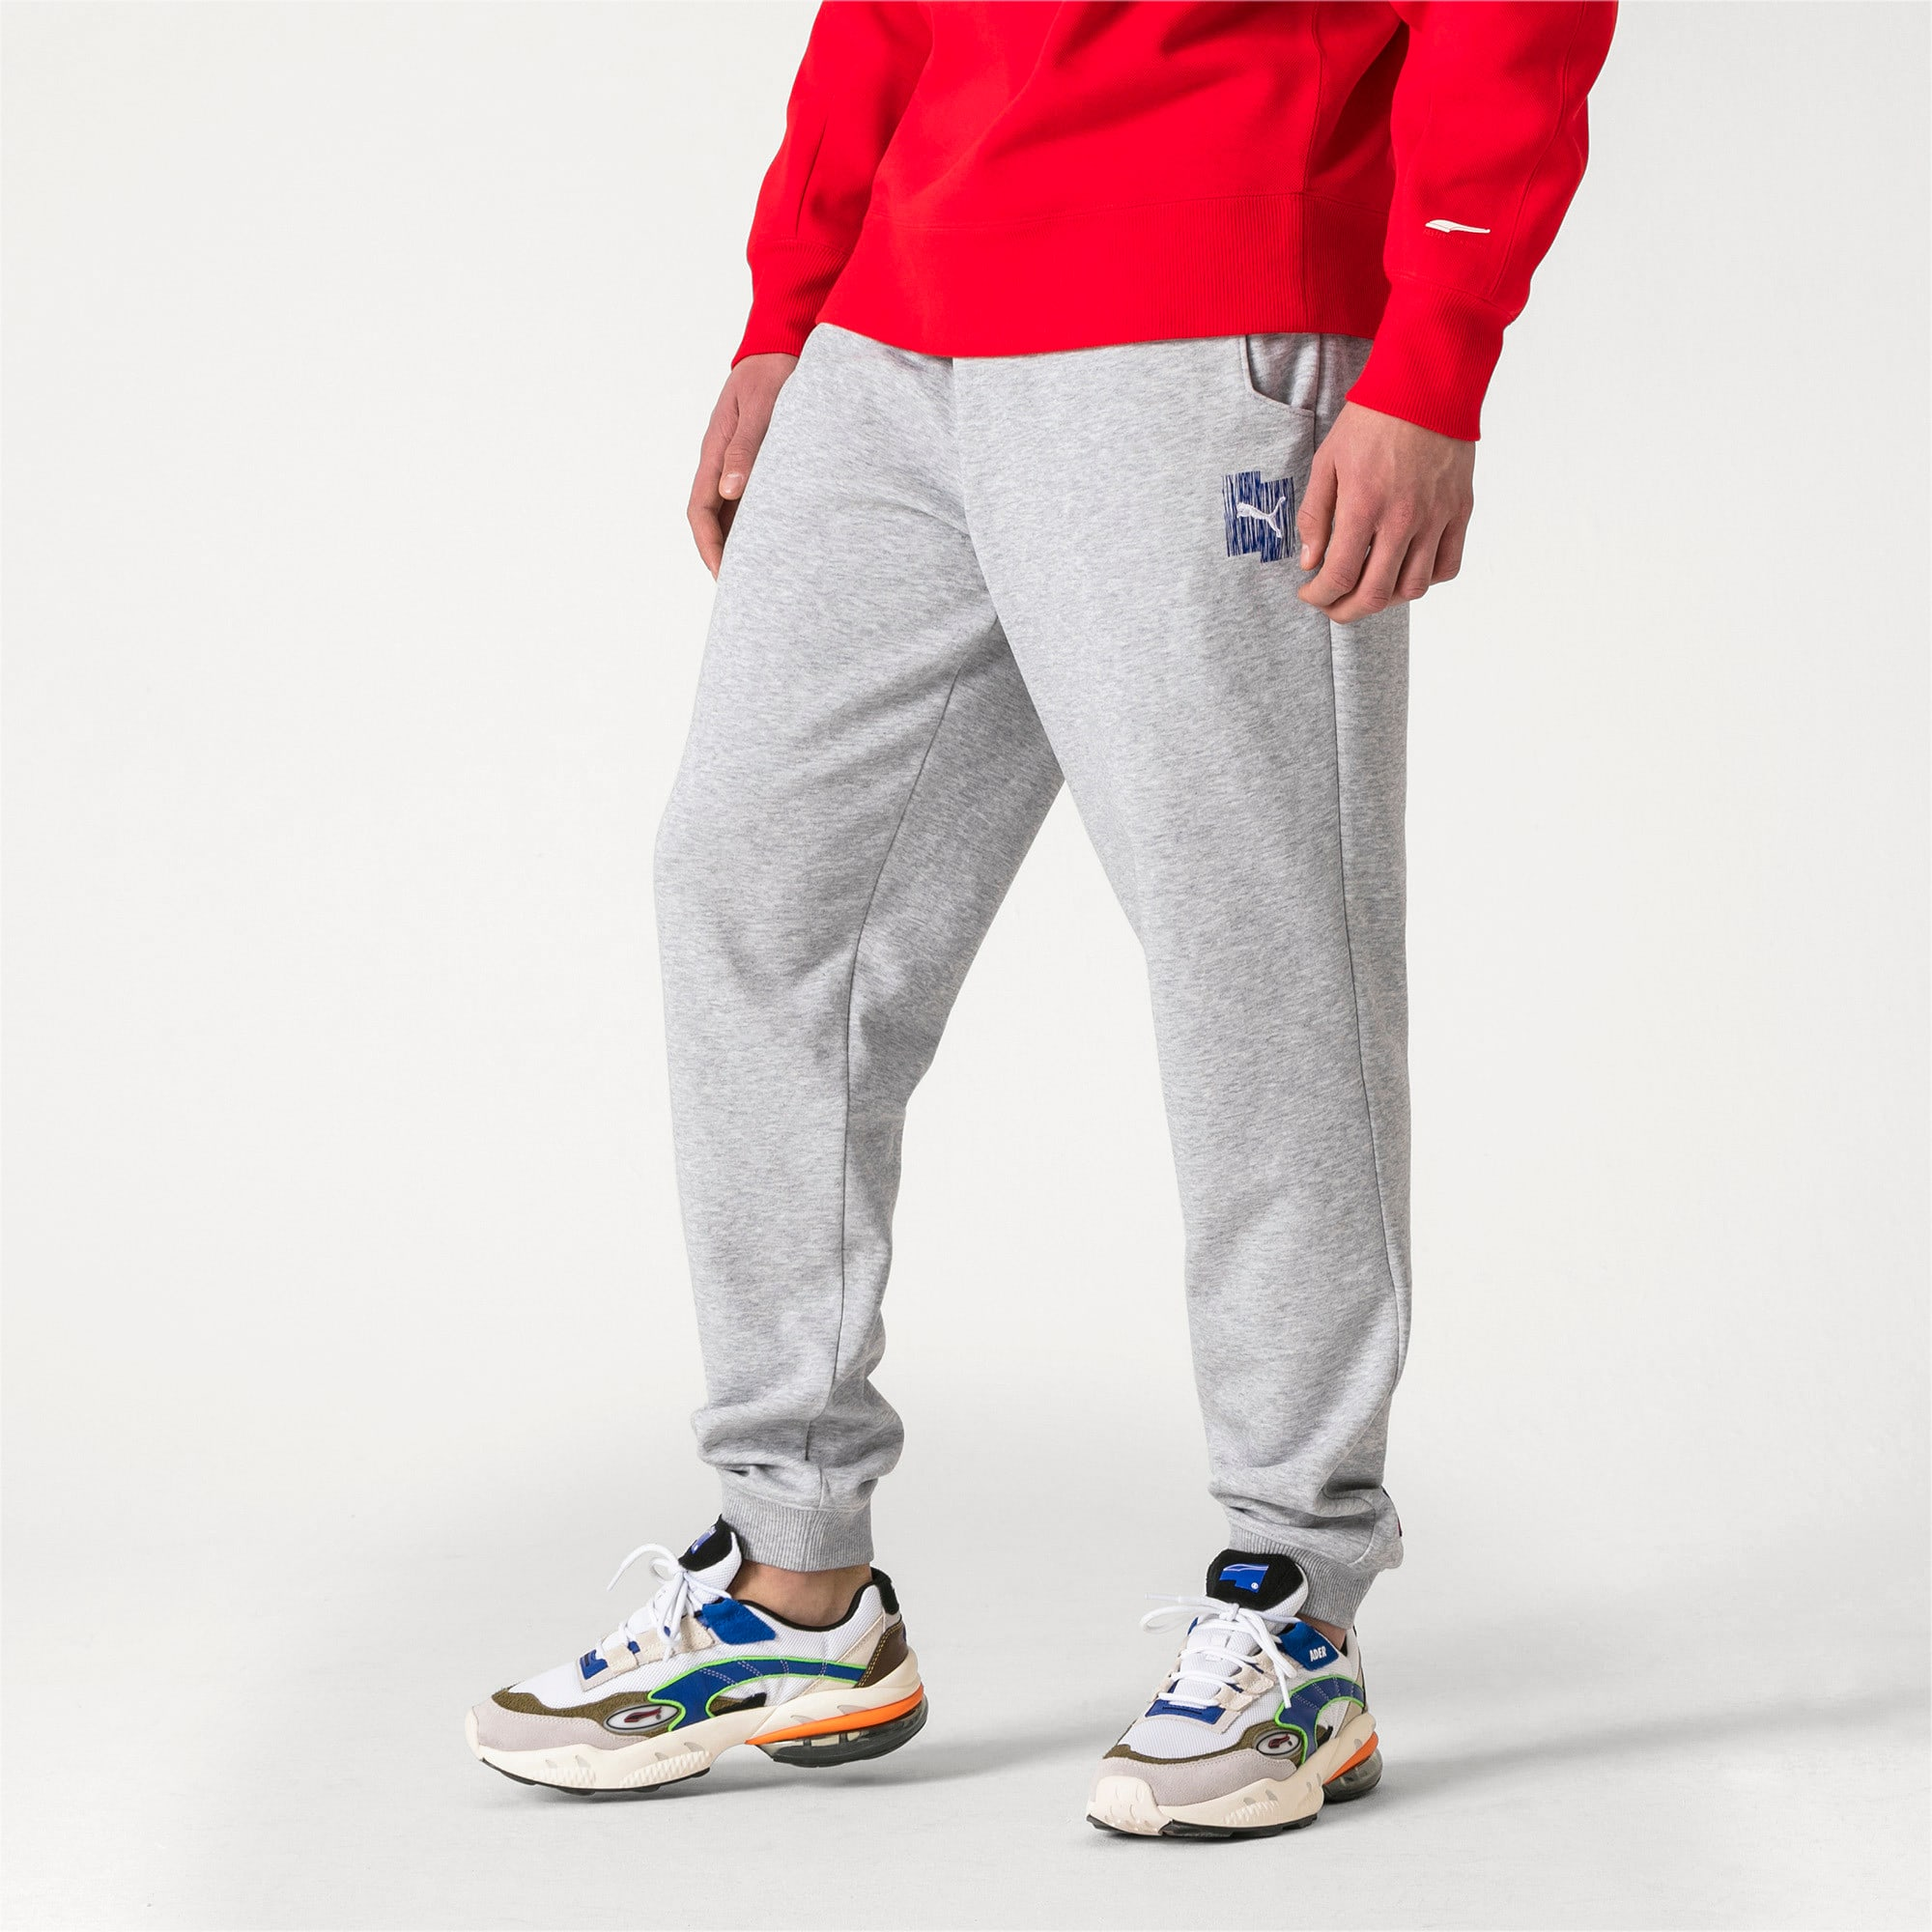 Thumbnail 2 of PUMA x ADER ERROR Strick Sweatpants, Light Gray Heather, medium